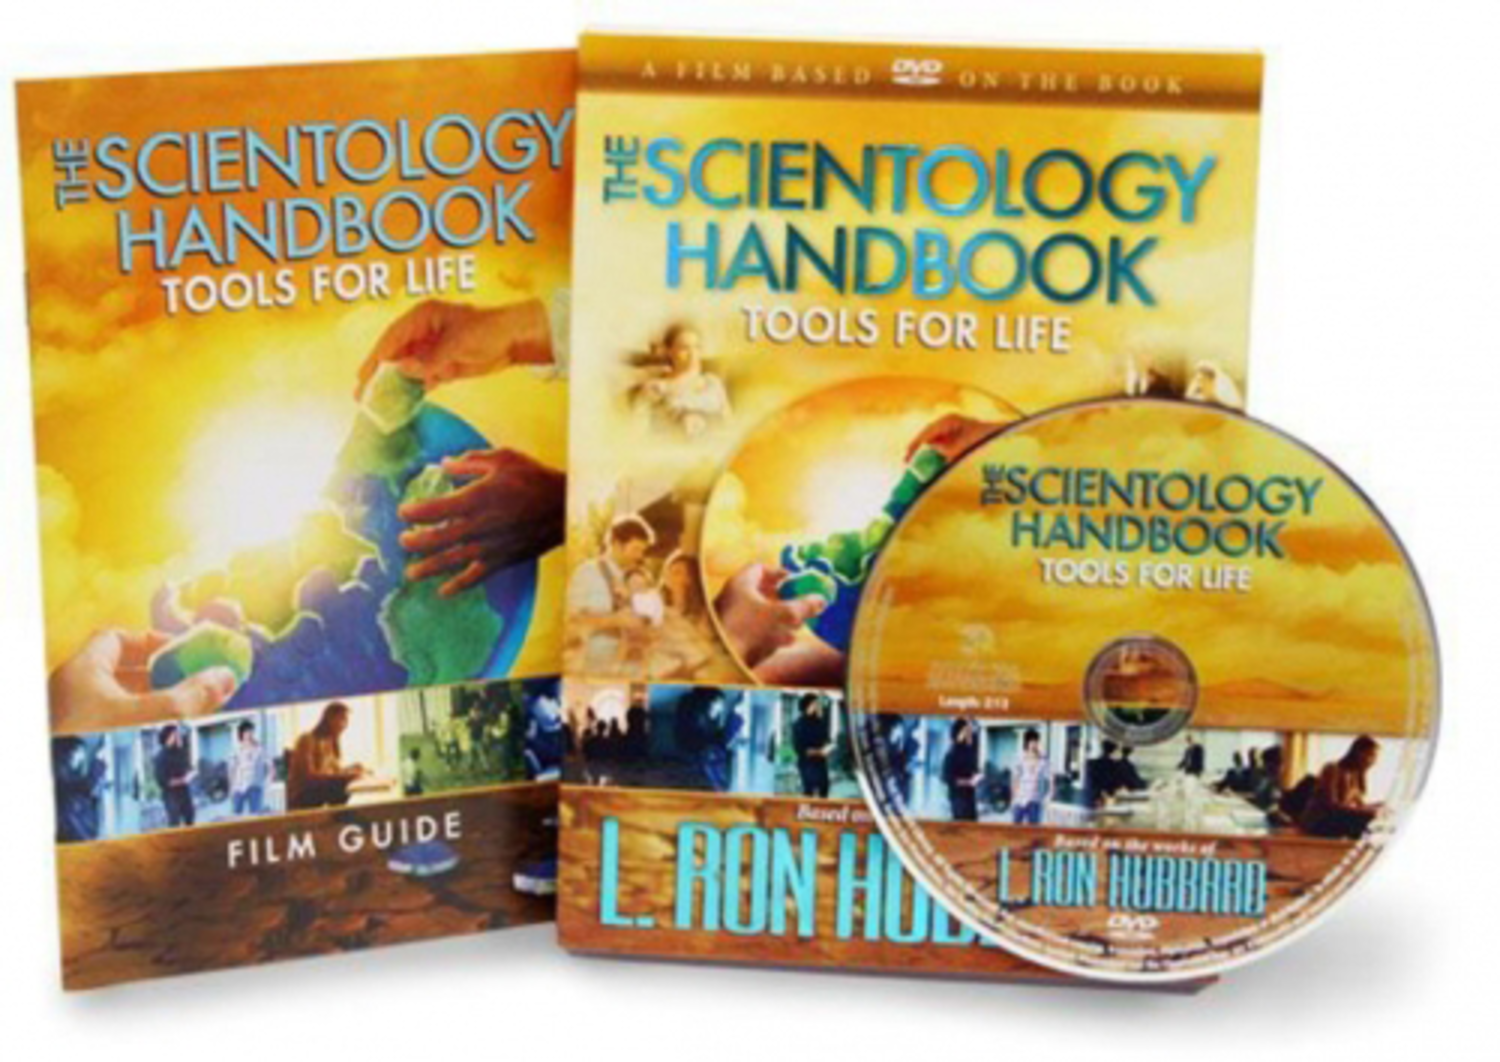 Why is scientology recognised as a religion?